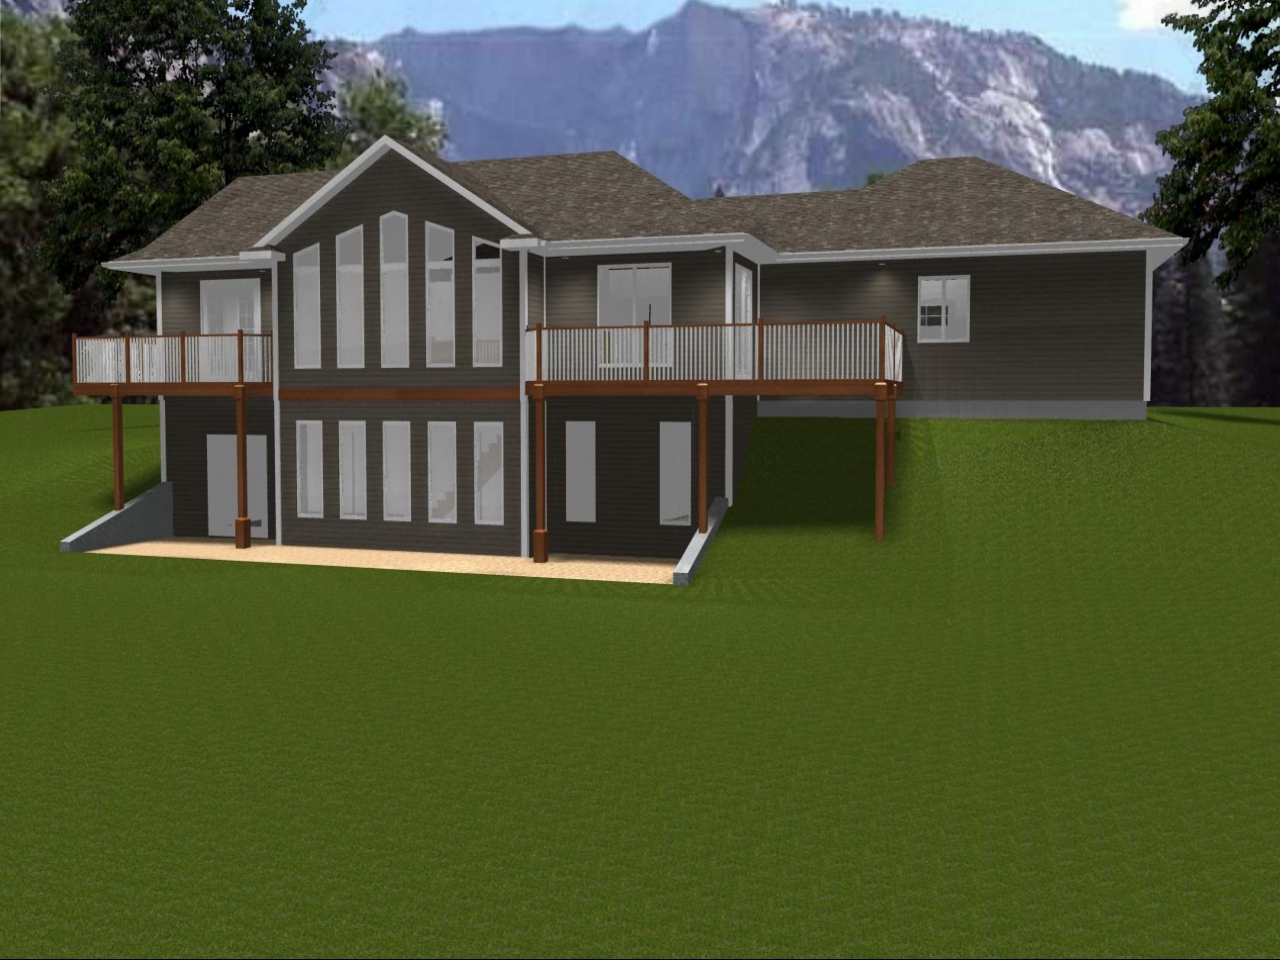 Ranch house plans with walkout basement ranch house plans for Bungalow house plans with basement and garage